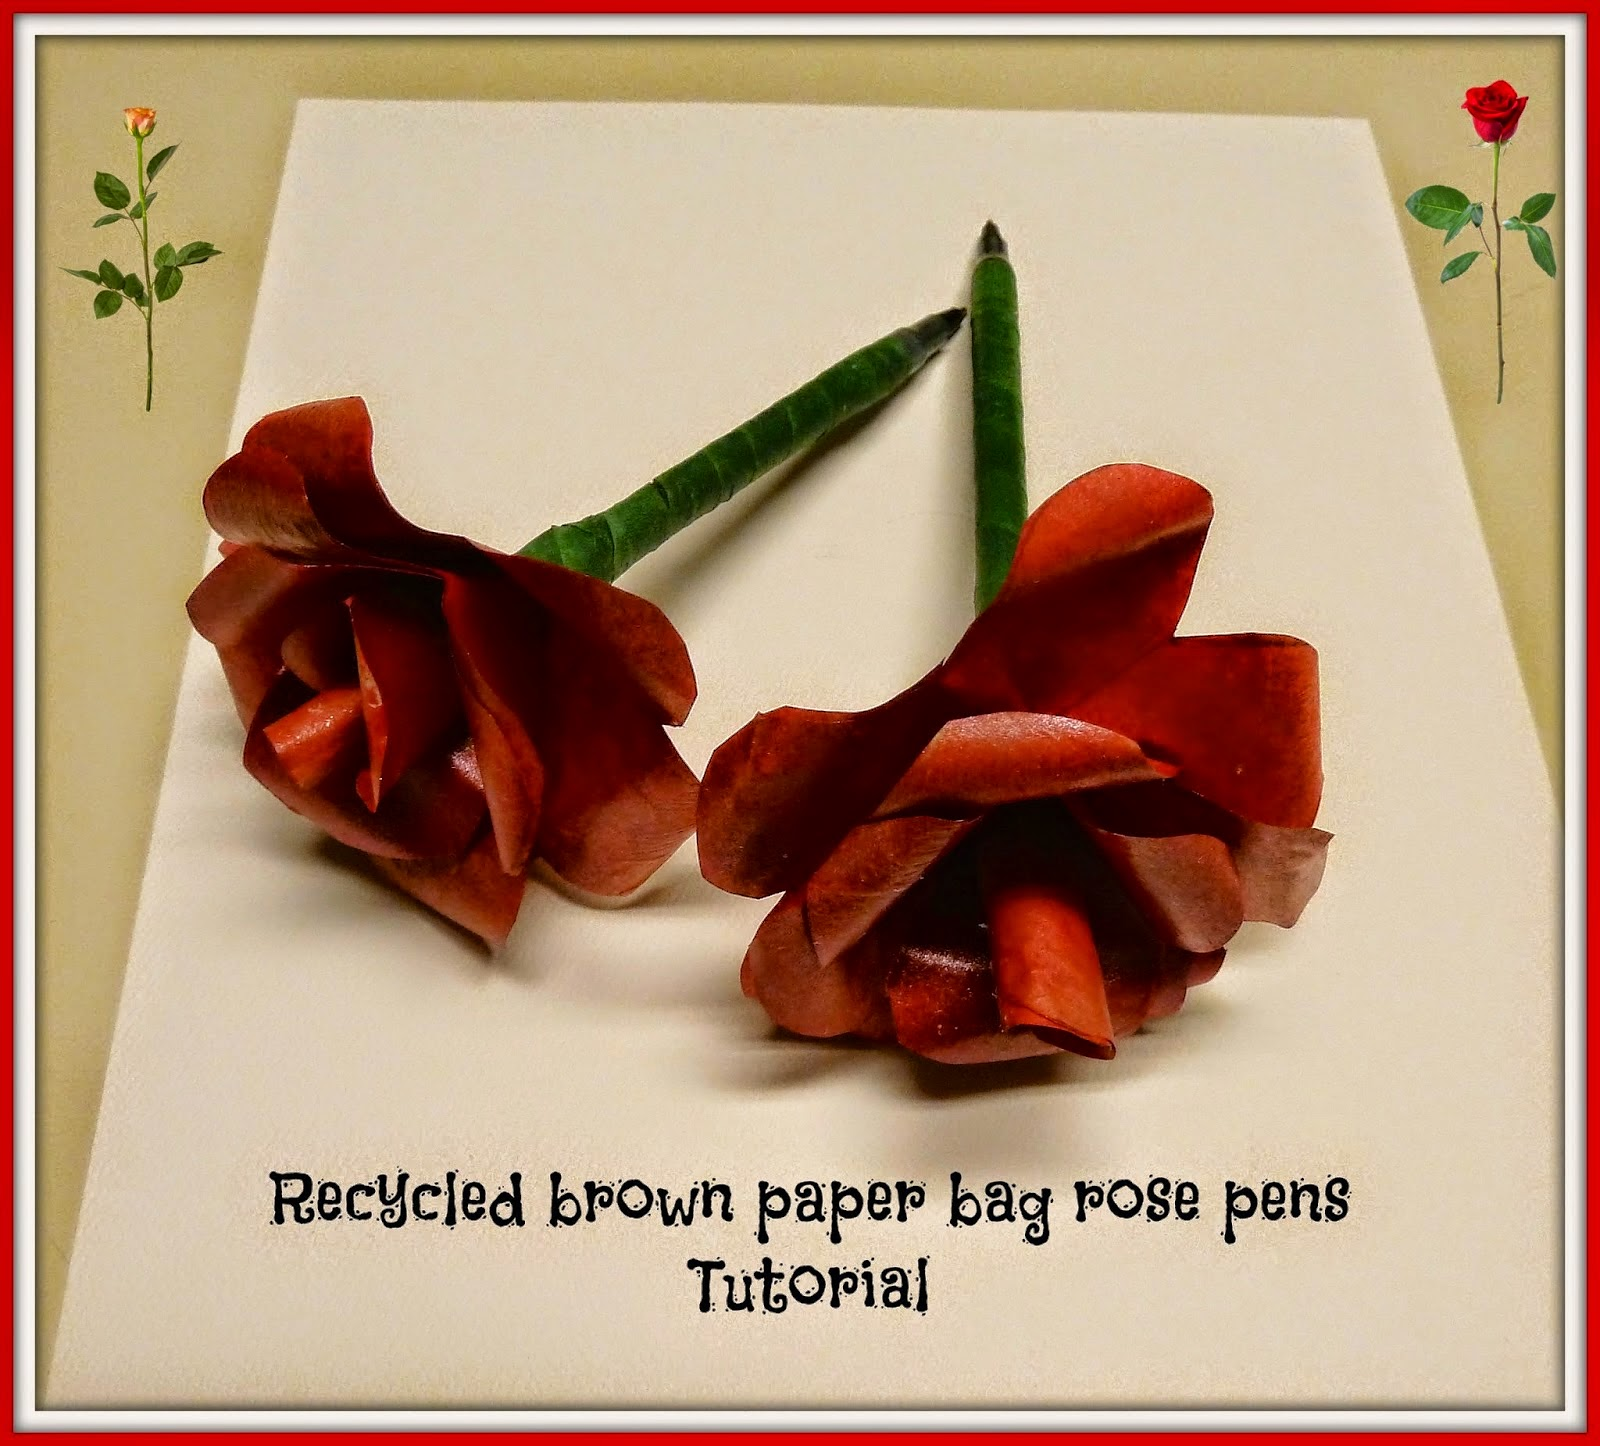 recycled brown paper rose pens